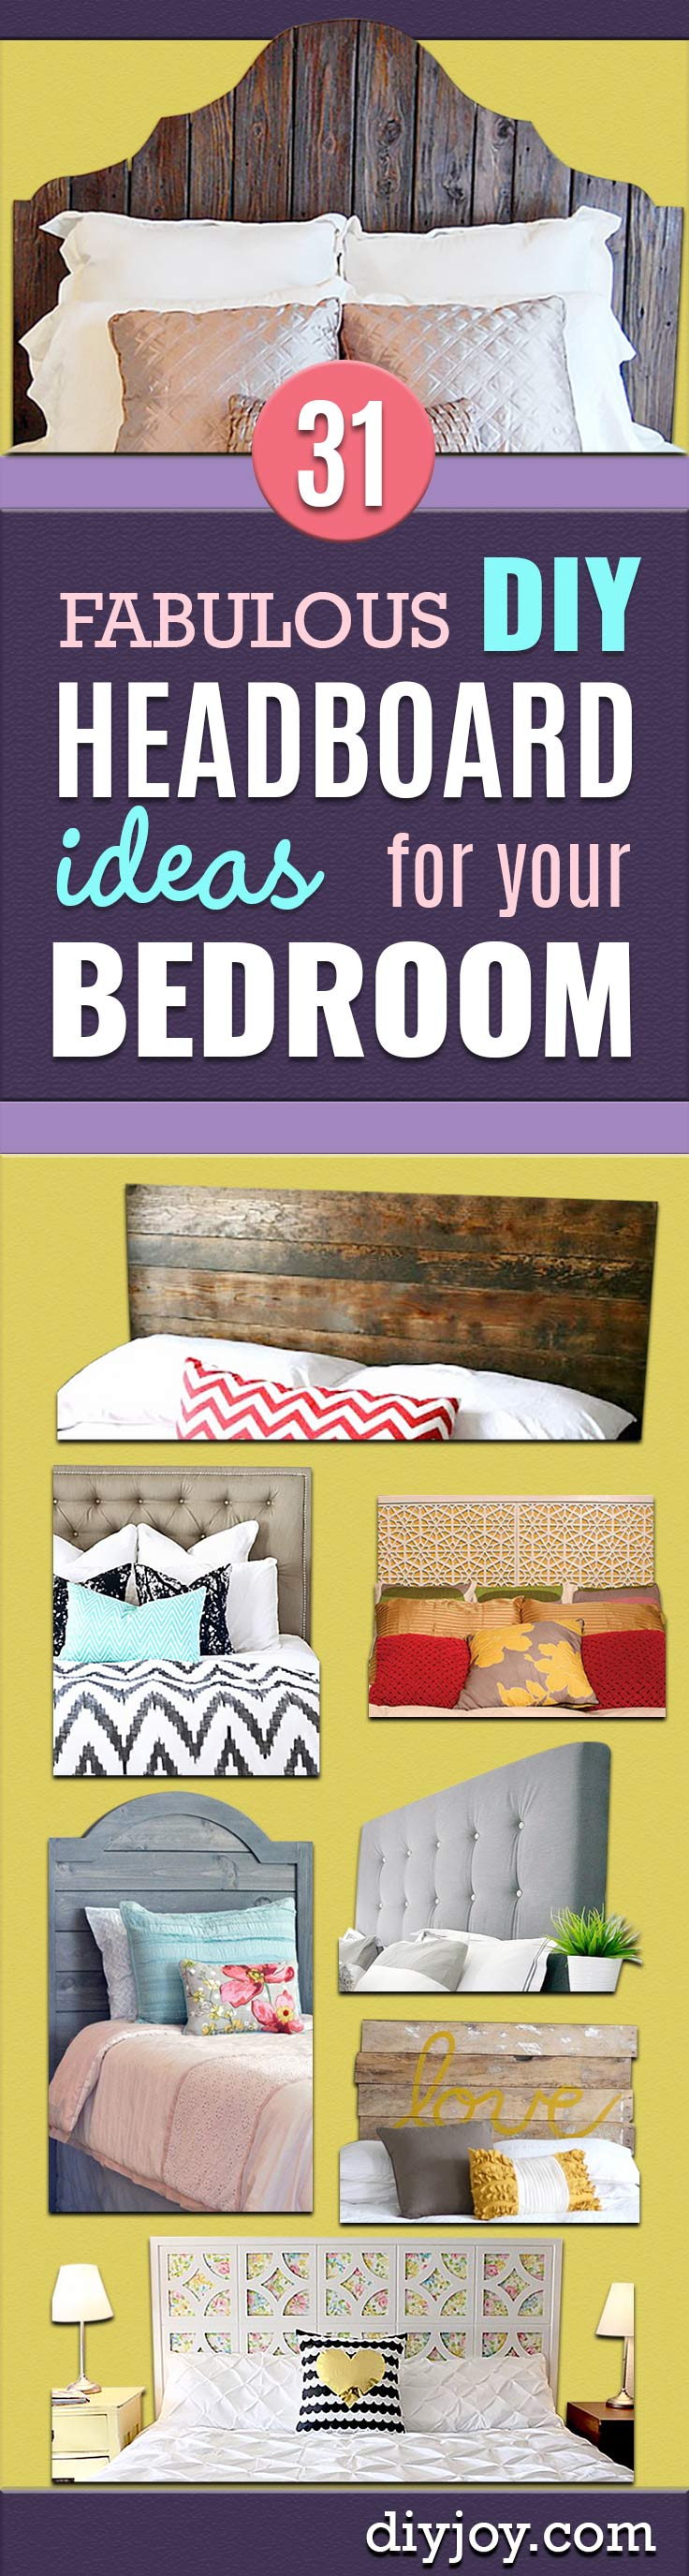 DIY Headboard Ideas - Easy and Cheap Do It Yourself Headboards - Upholstered, Wooden, Fabric Tufted, Rustic Pallet, Projects With Lights, Storage and More Step by Step Tutorials #diy #bedroom #diydecor